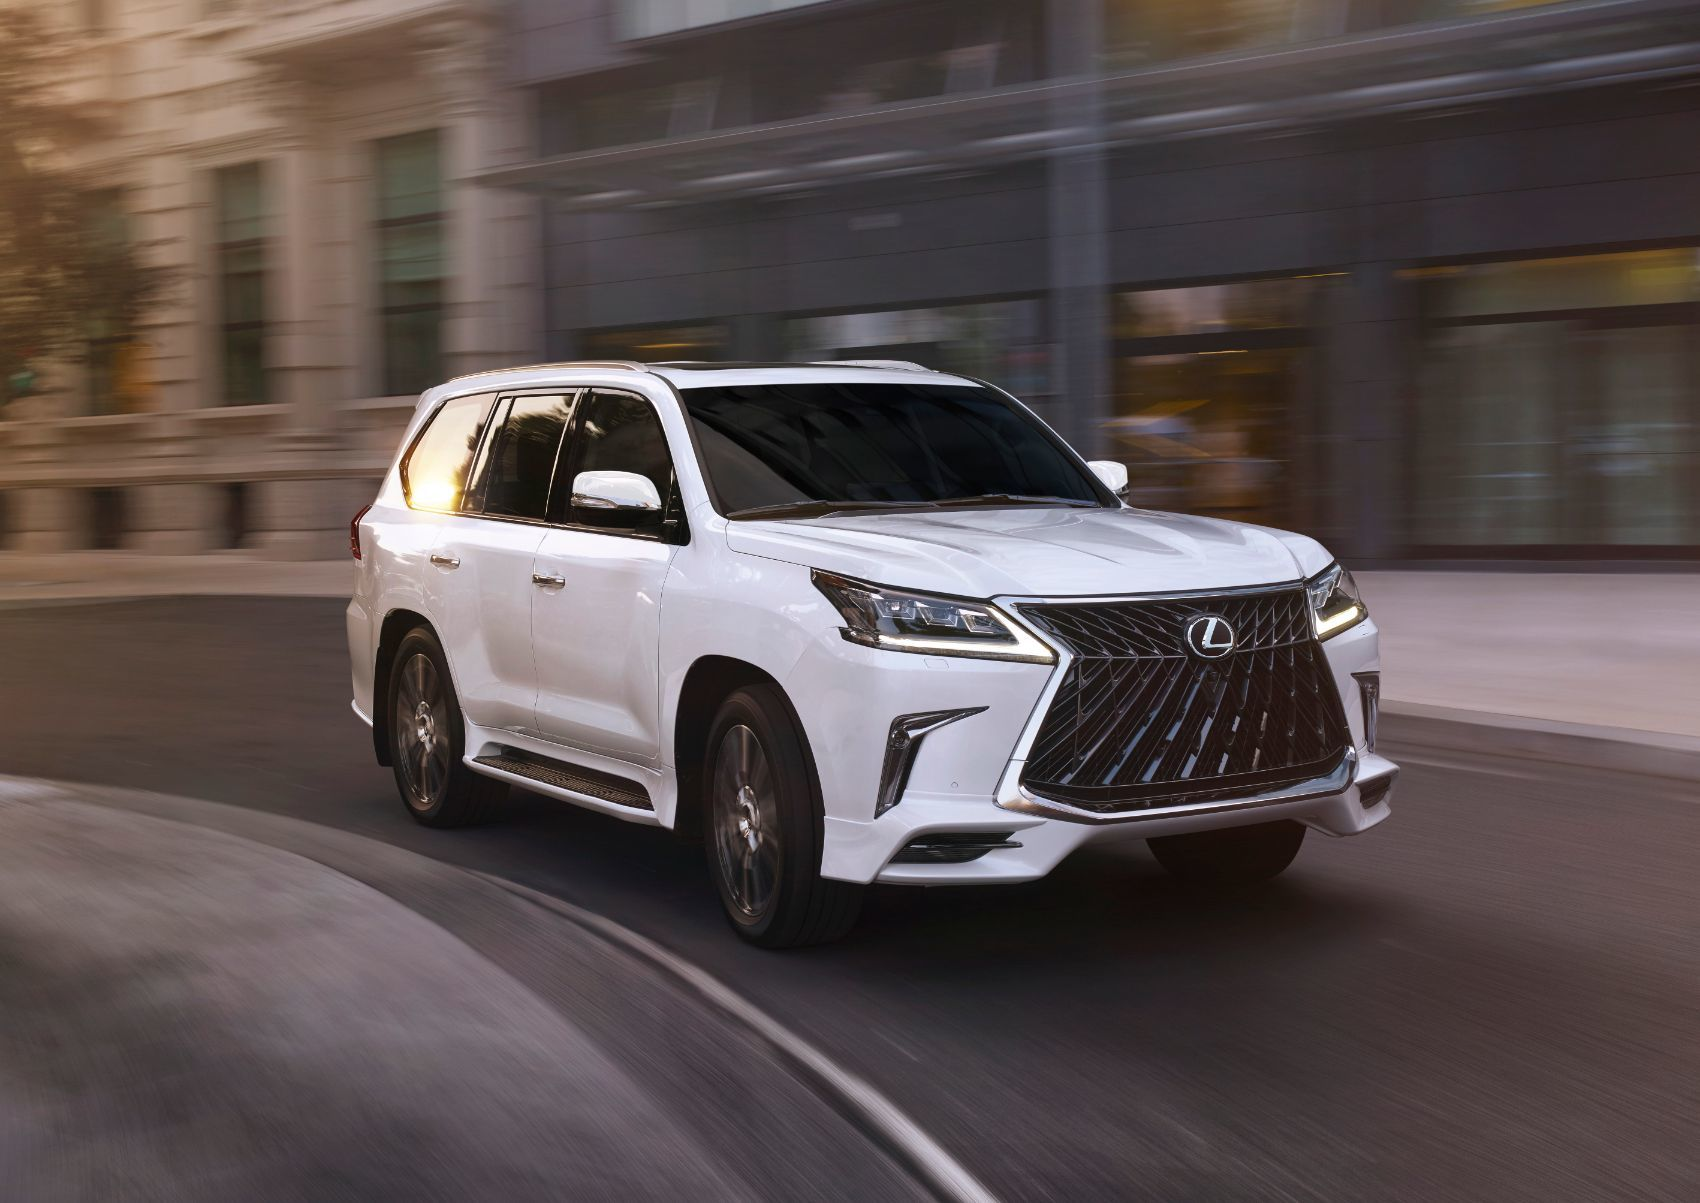 2020 Lexus Lx 570 Three Row Review By The Book Luxury Suv